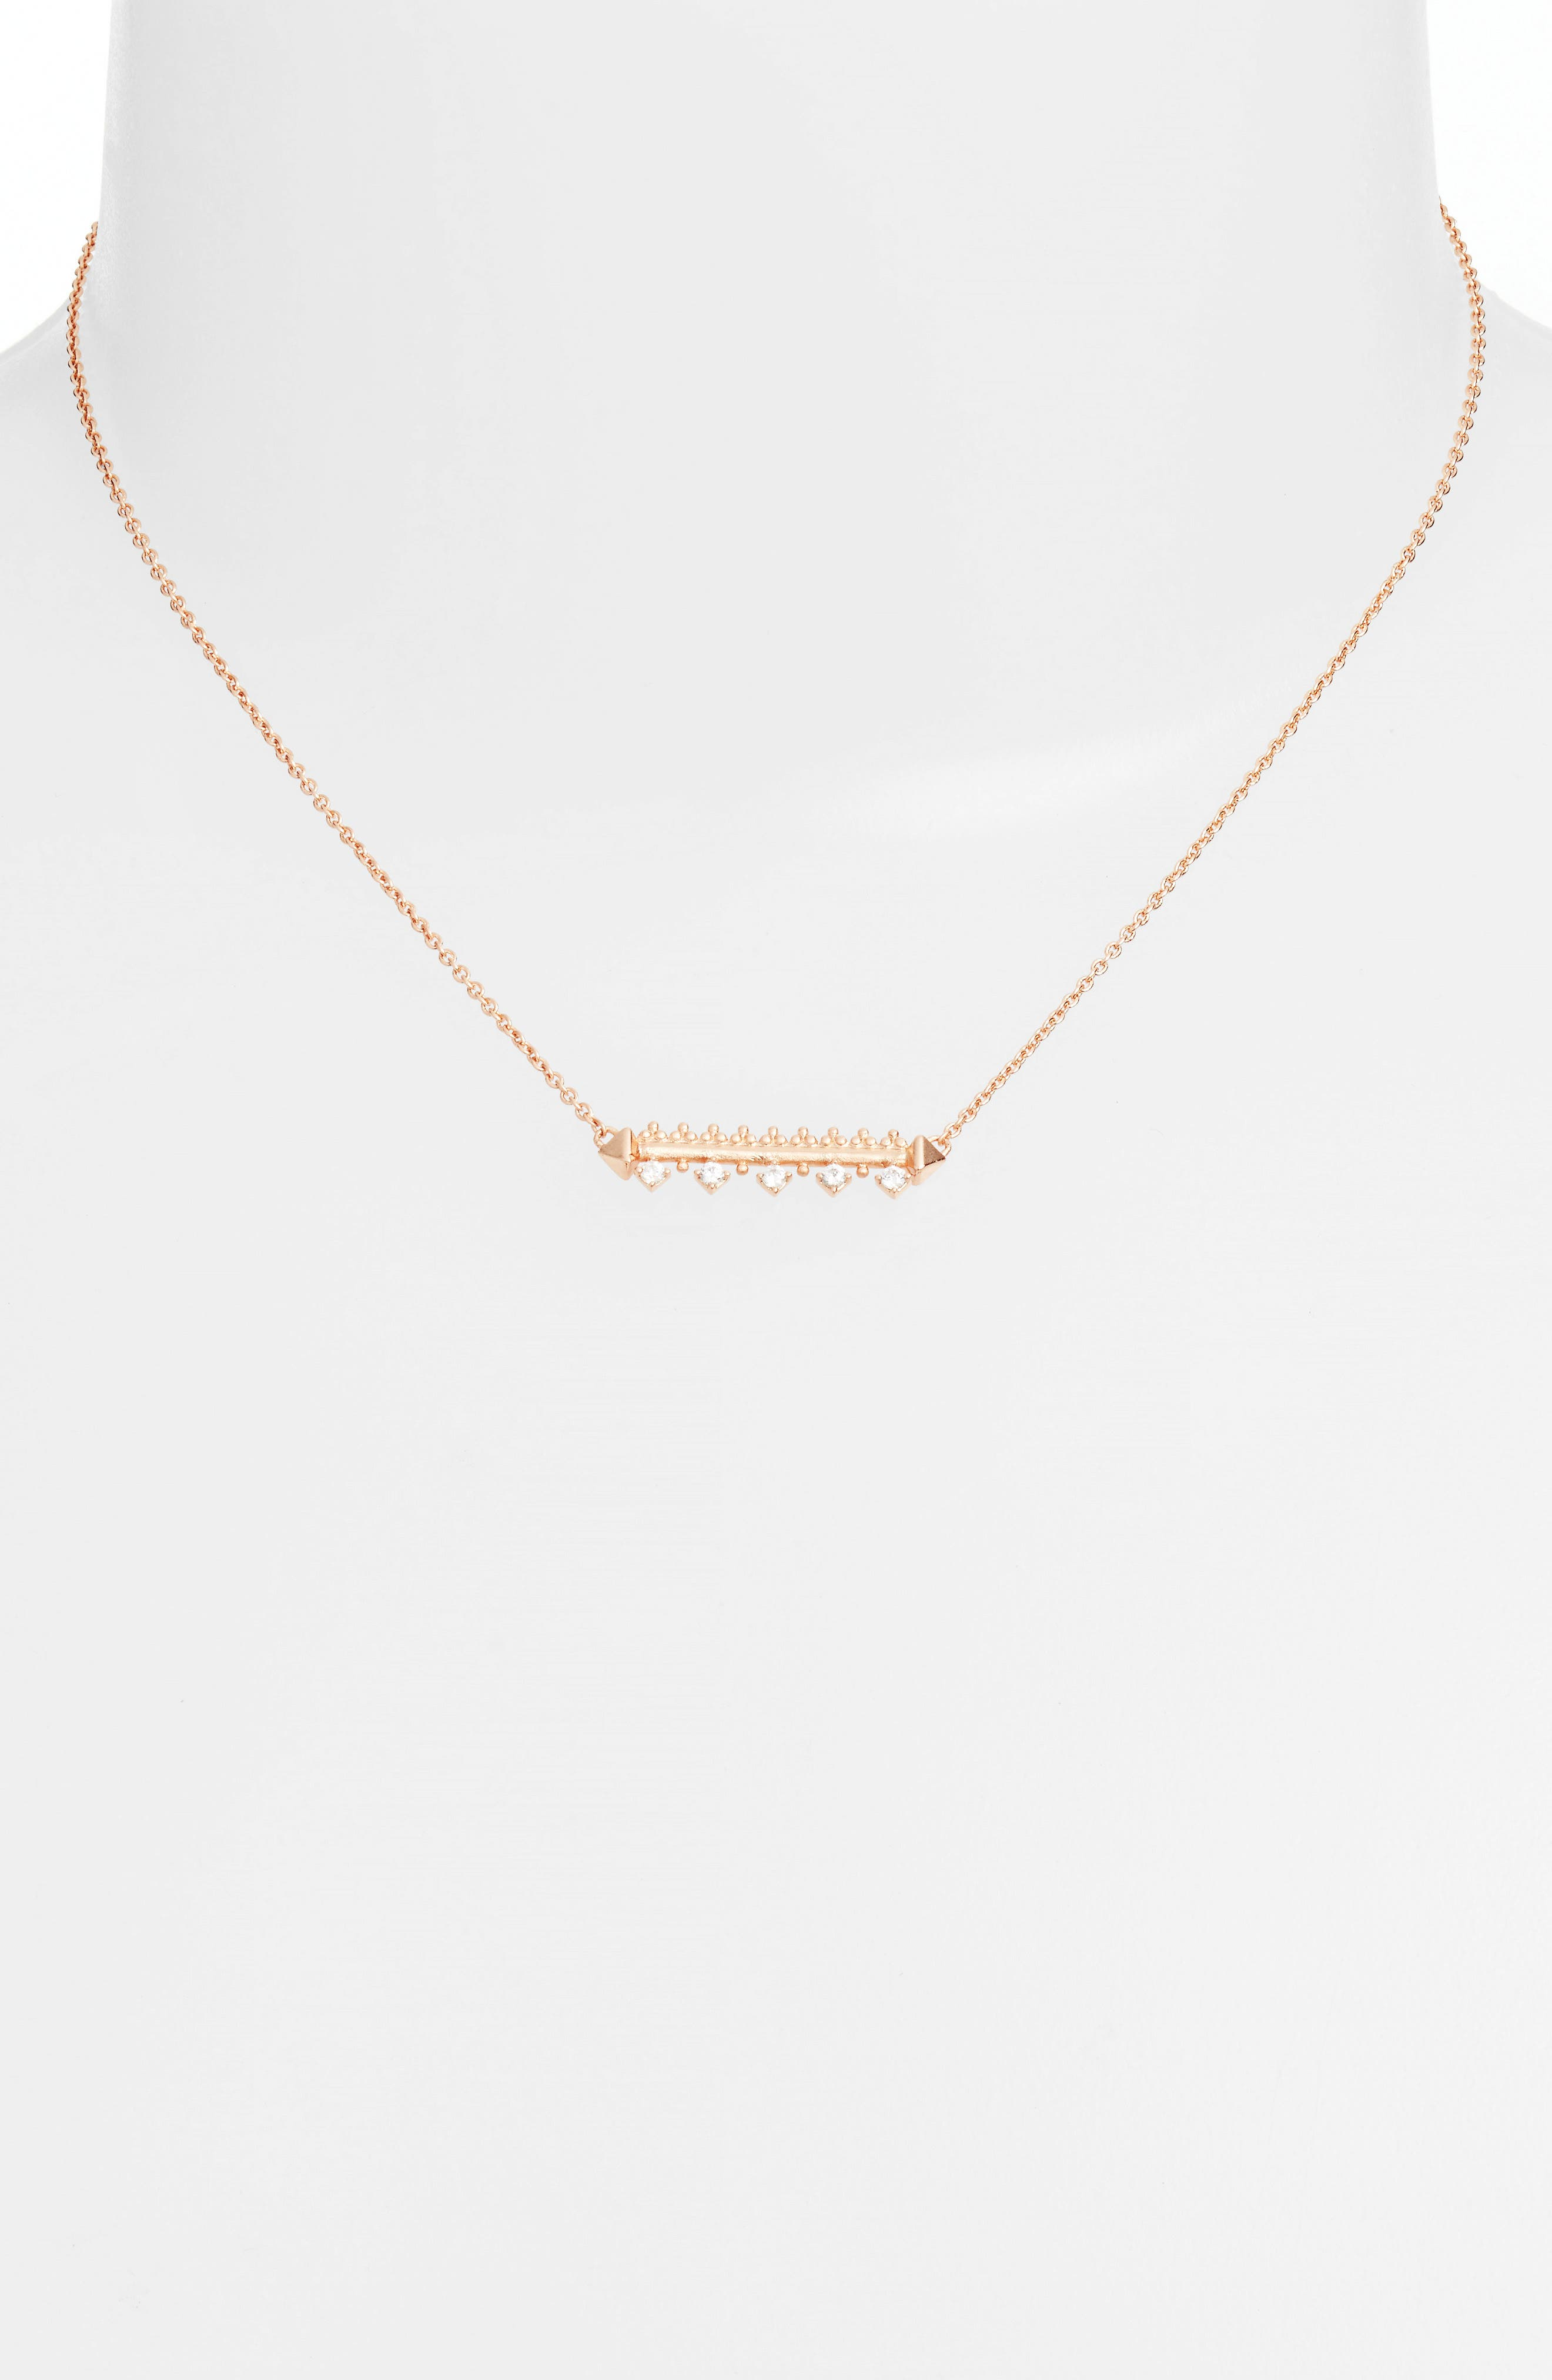 Anissa Bar Pendant Necklace,                         Main,                         color, Rose Gold